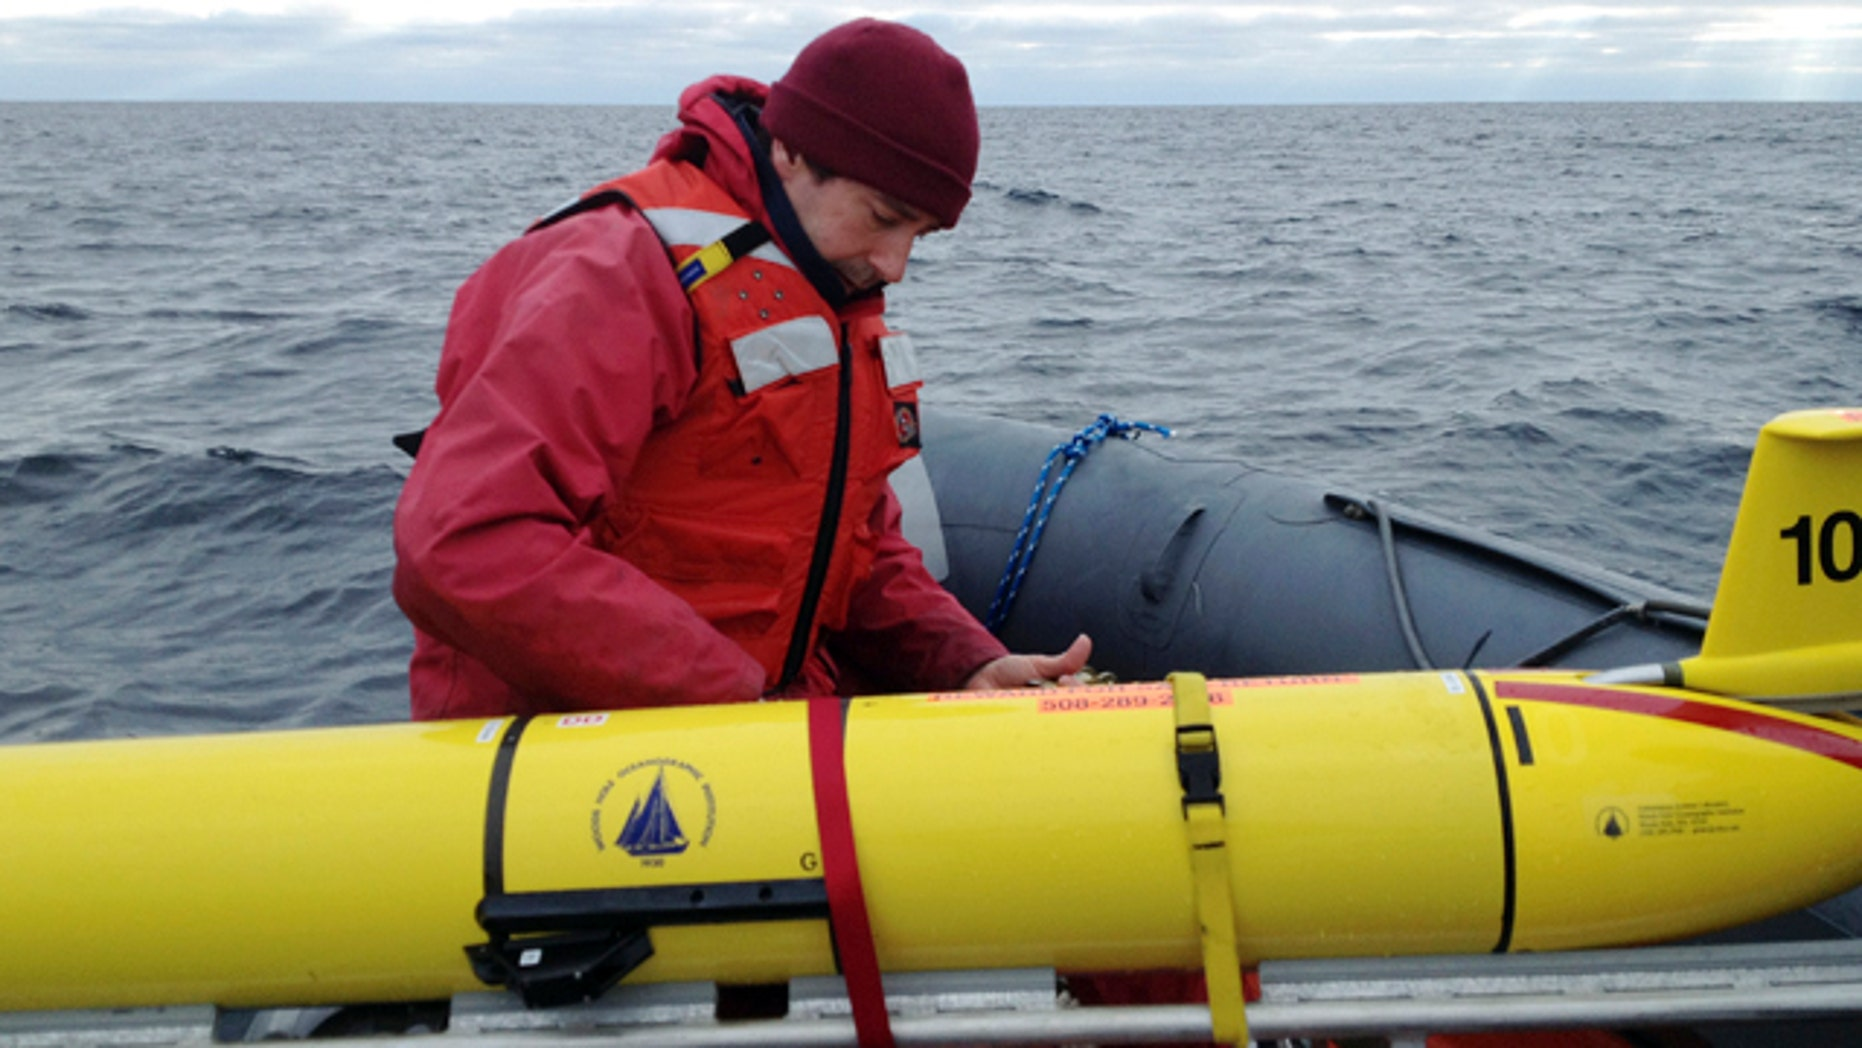 Dec. 4, 2012: Woods Hole Oceanographic Institution chief scientist Mark Baumgartner, secures an underwater robot used to collect acoustic data to help scientists locate endangered whales in the north Atlantic Ocean.